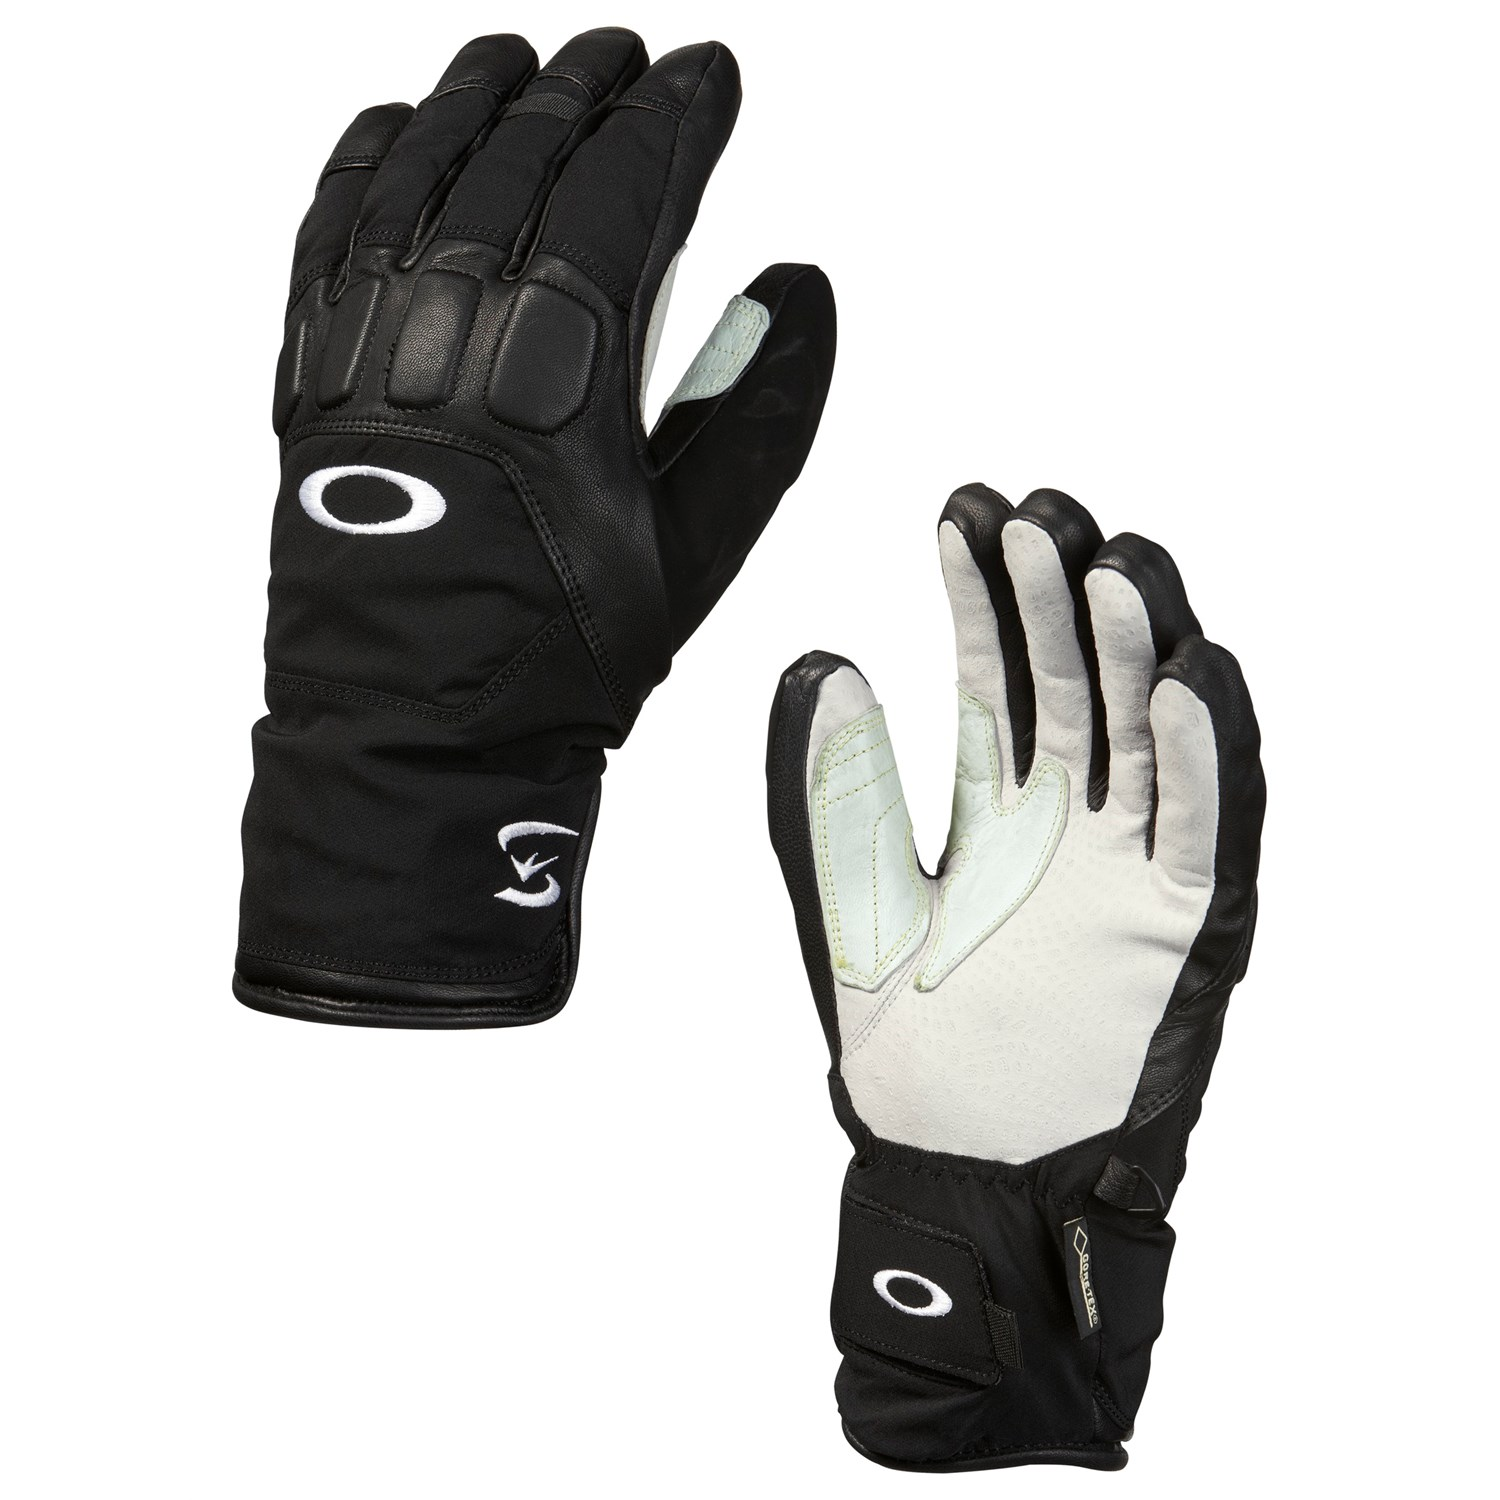 Mens leather gloves black friday - Oakley Leather Gloves